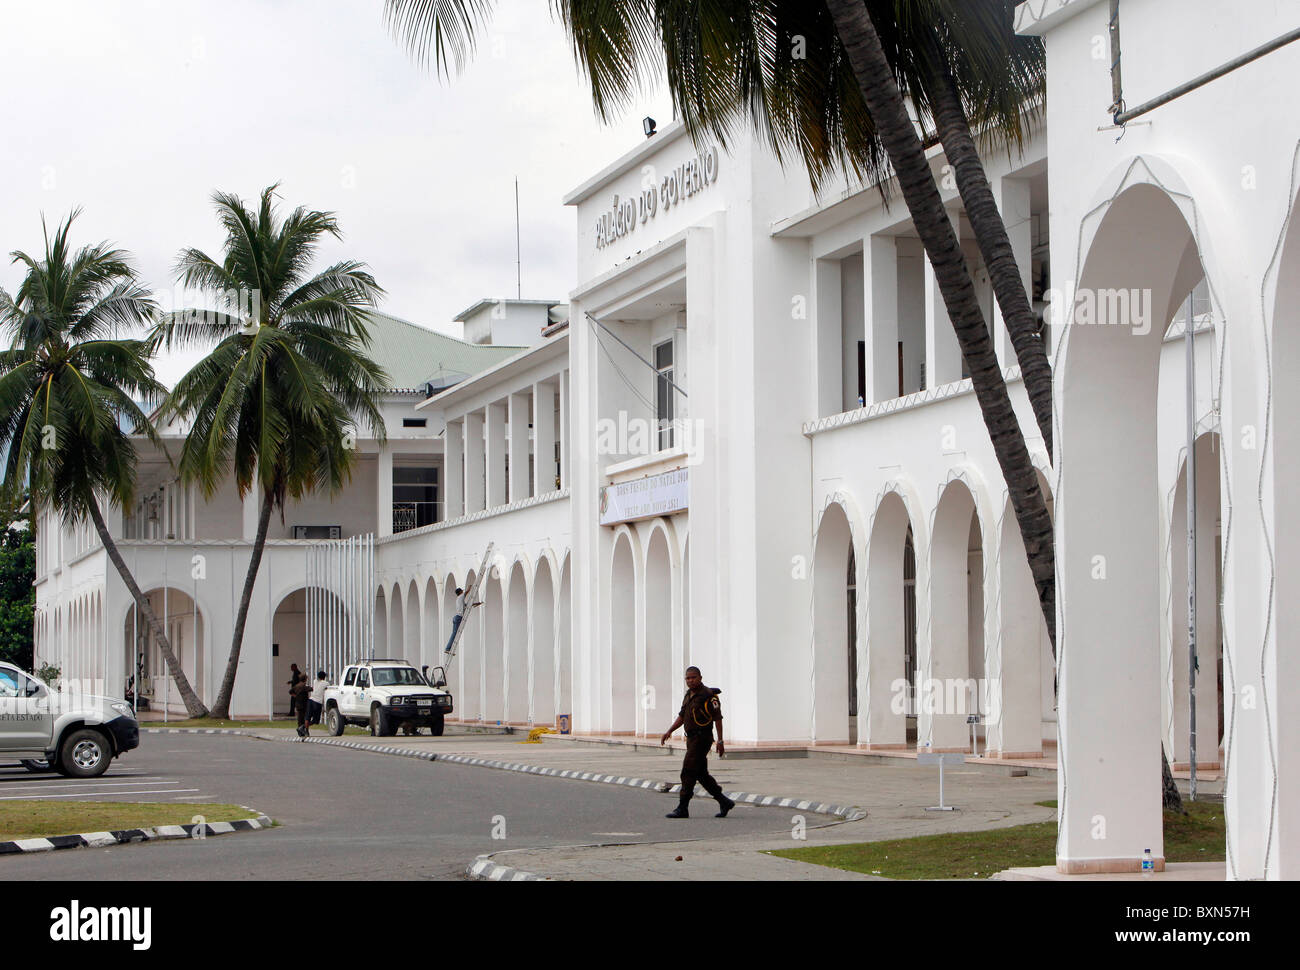 The Palacio do Governo (Government Palace) in Dili, capital of Timor Leste (East Timor) - Stock Image